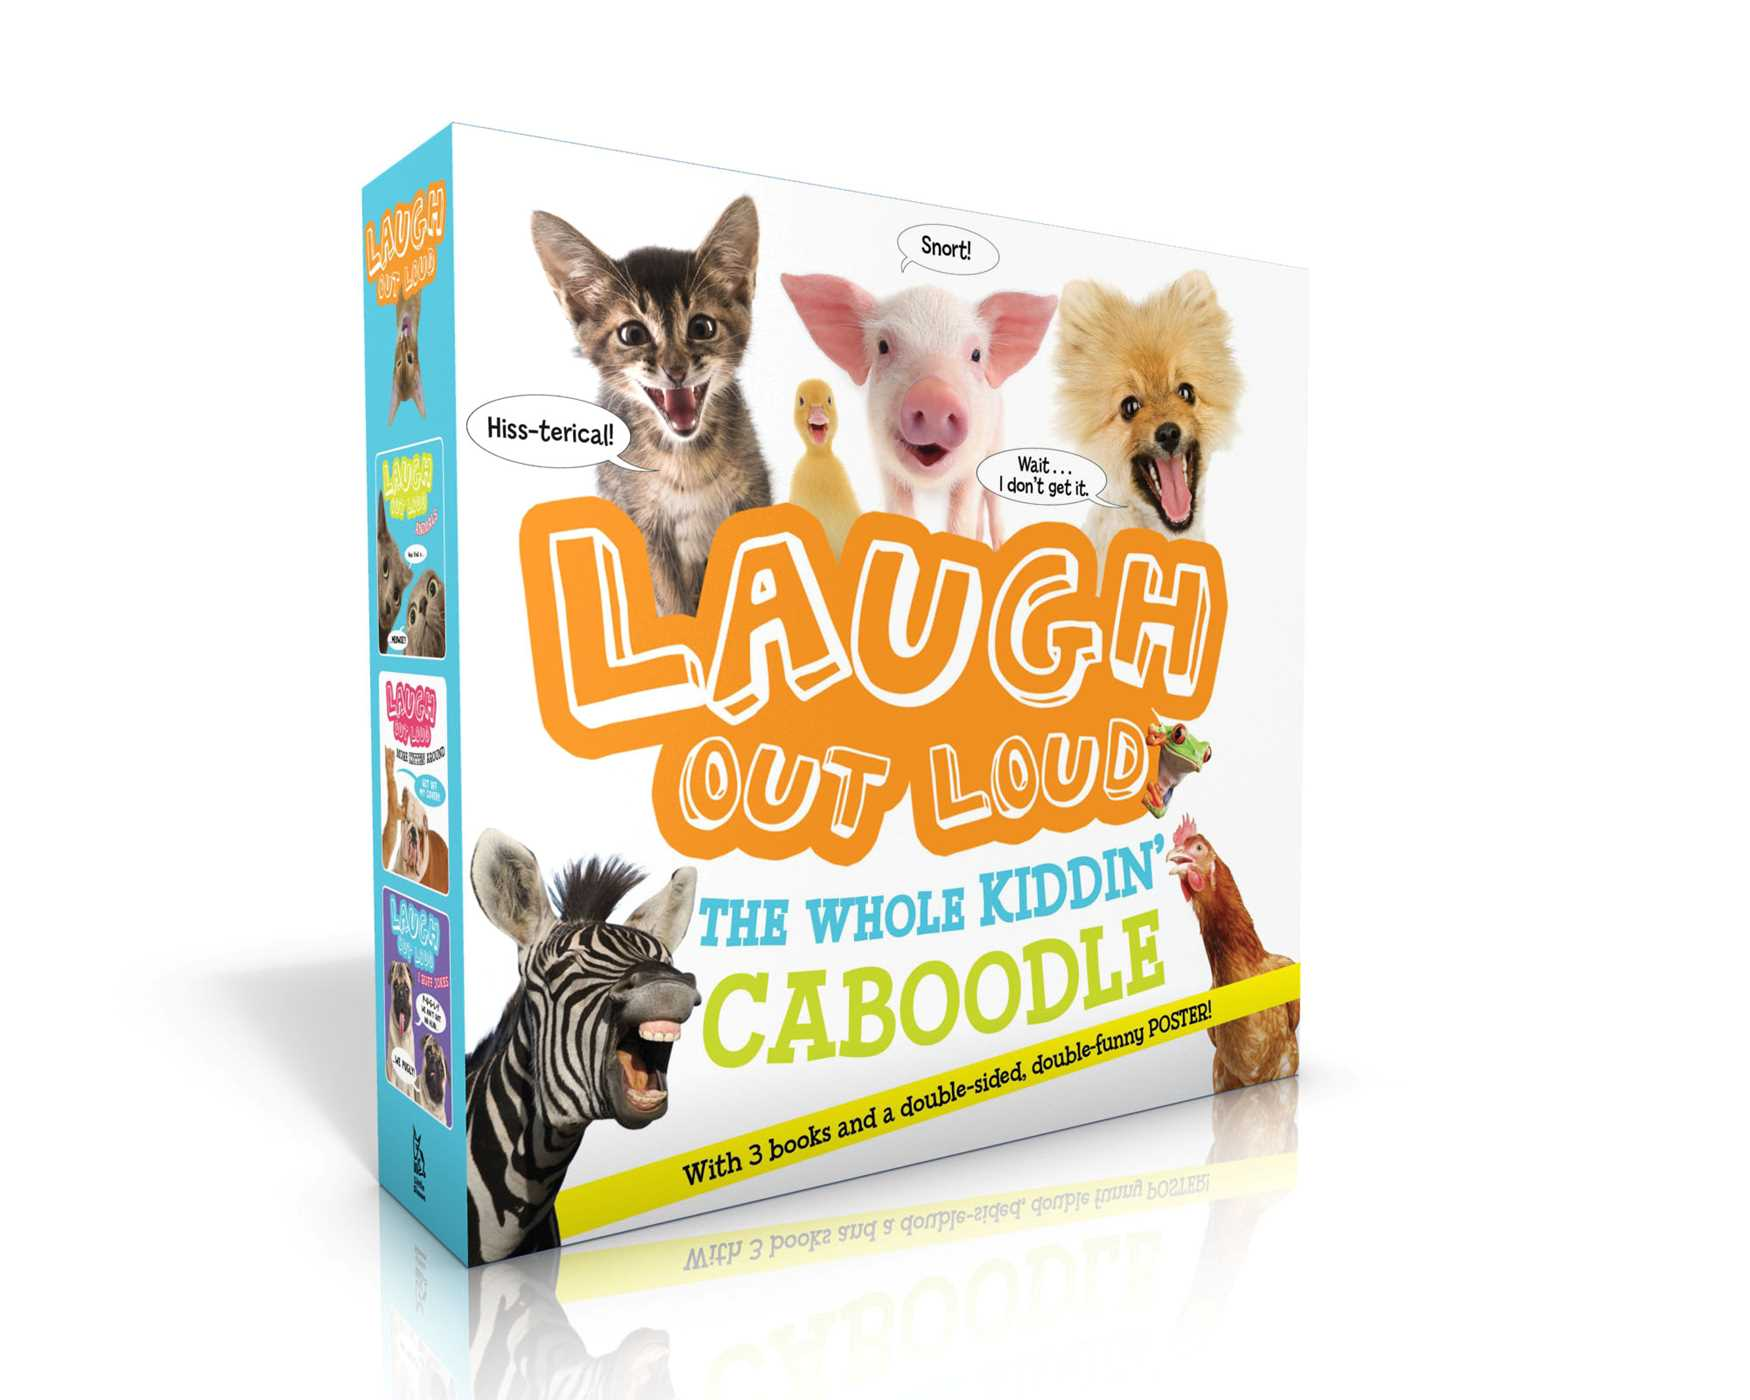 laugh out loud the whole kiddin caboodle with 3 books and a double sided double funny